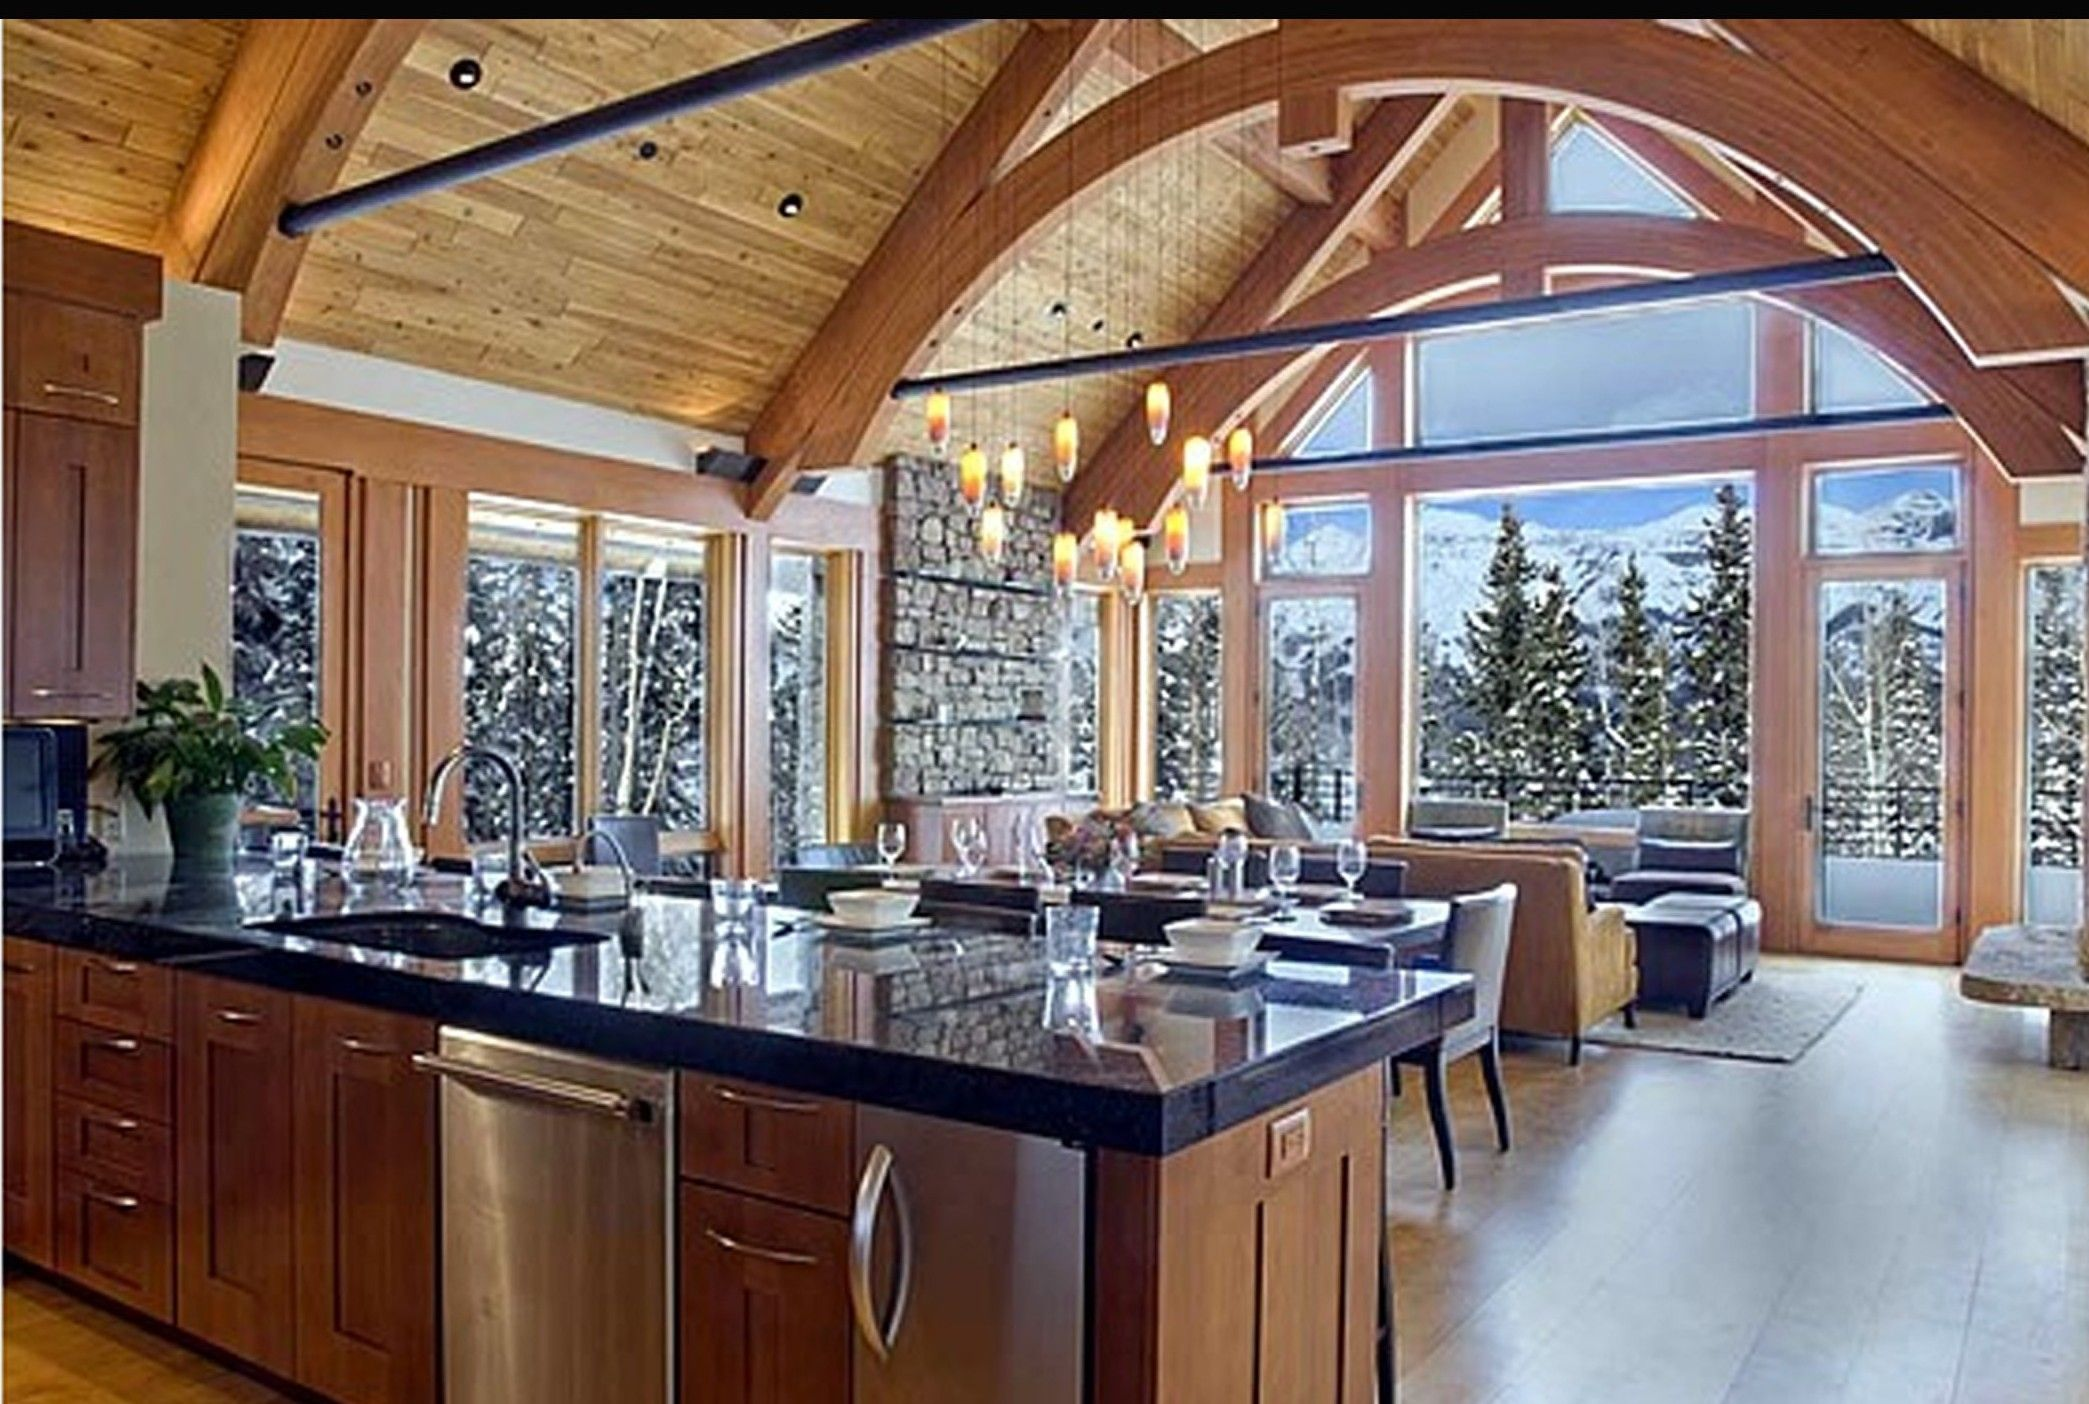 6 Dream Kitchens For Holiday Cooking And Entertaining | Kitchens ...